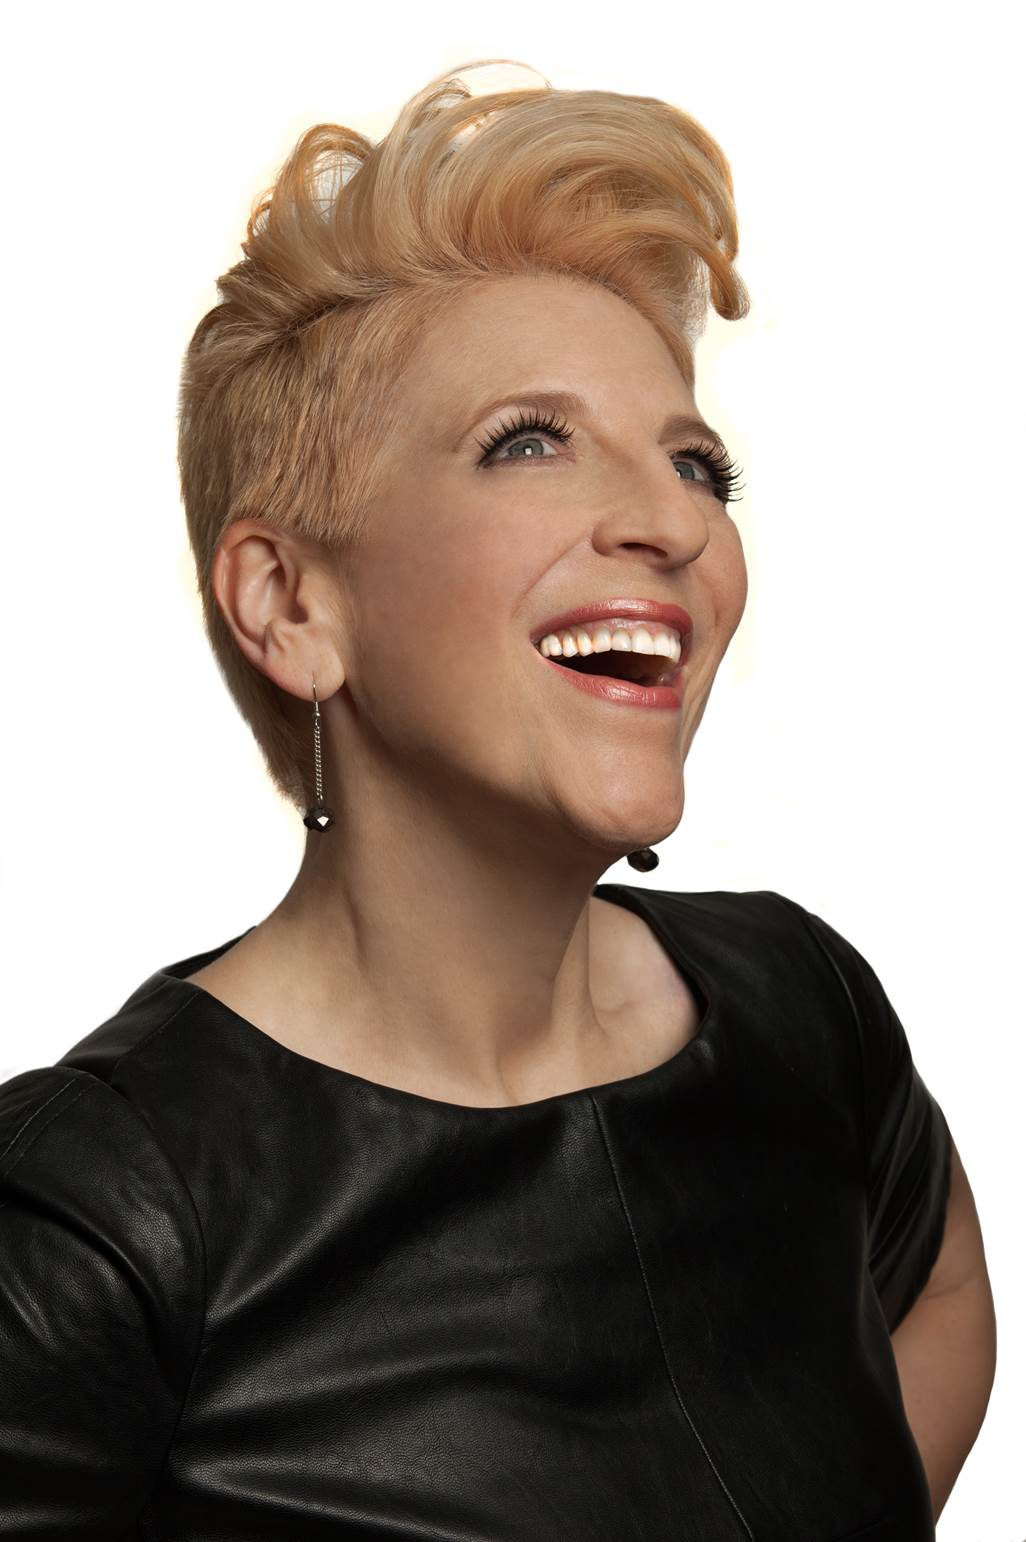 Comedys Lovable Queen Of Mean Lisa Lampanelli Returns To Hard